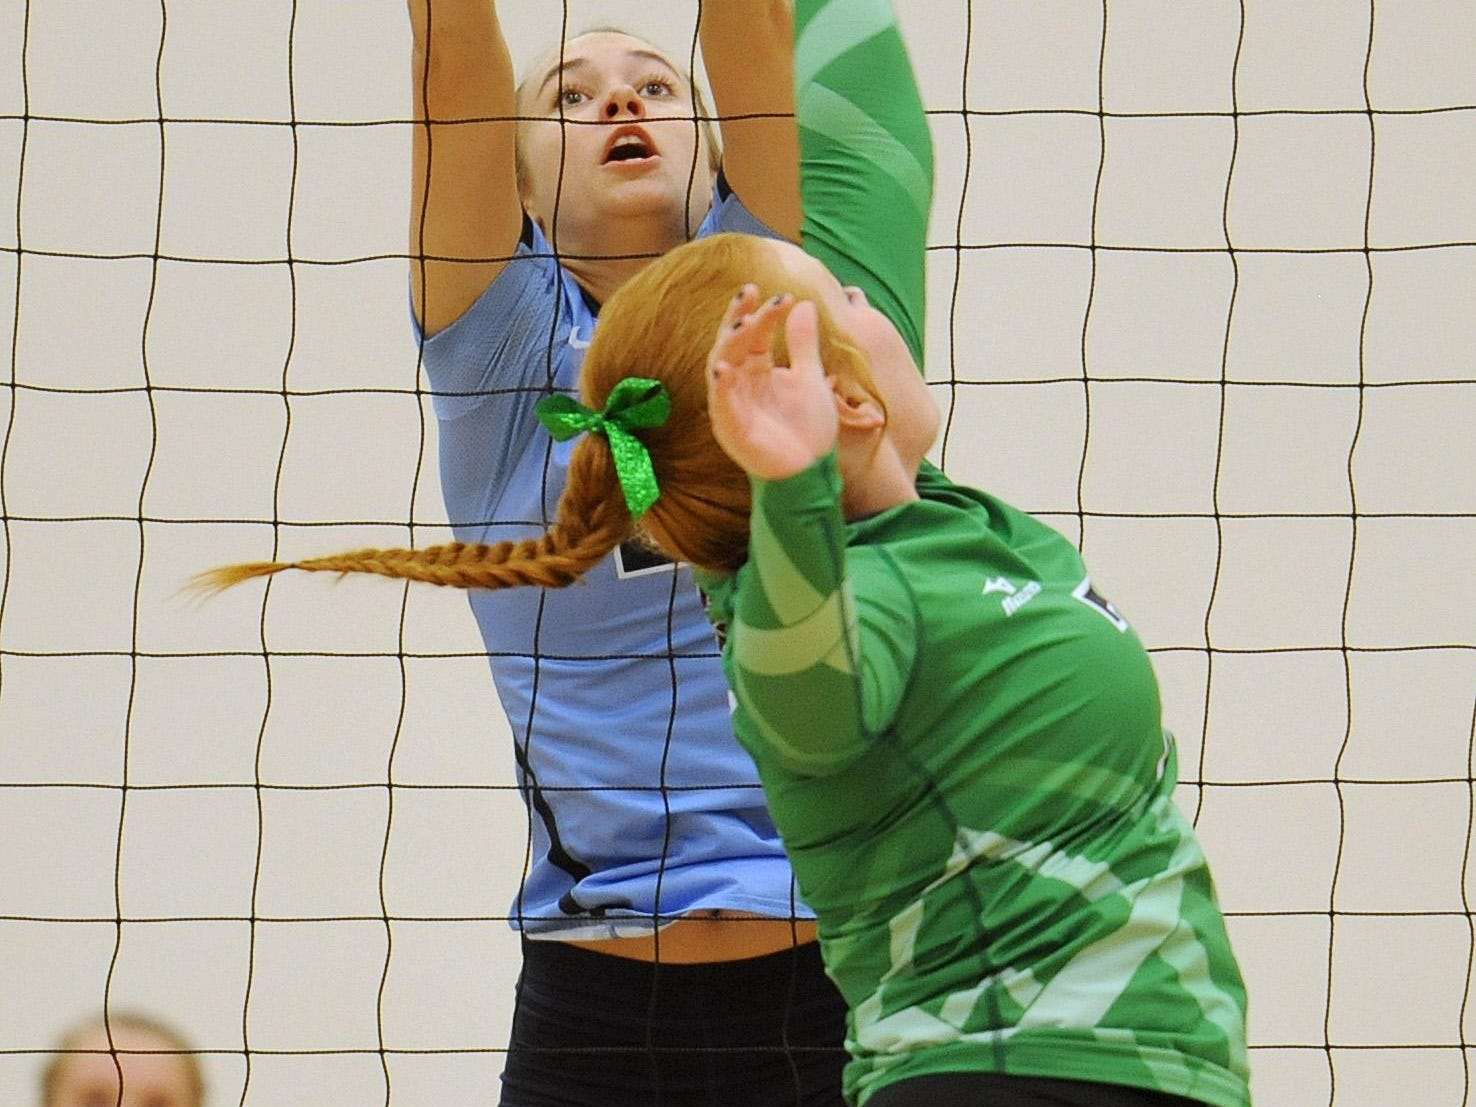 Adena's Carissa Poehler jumps to block the ball hit over the net by Huntington's Kennedy Debord during the game at Adena on Tuesday. The final score was Adena 3, Huntington 0.